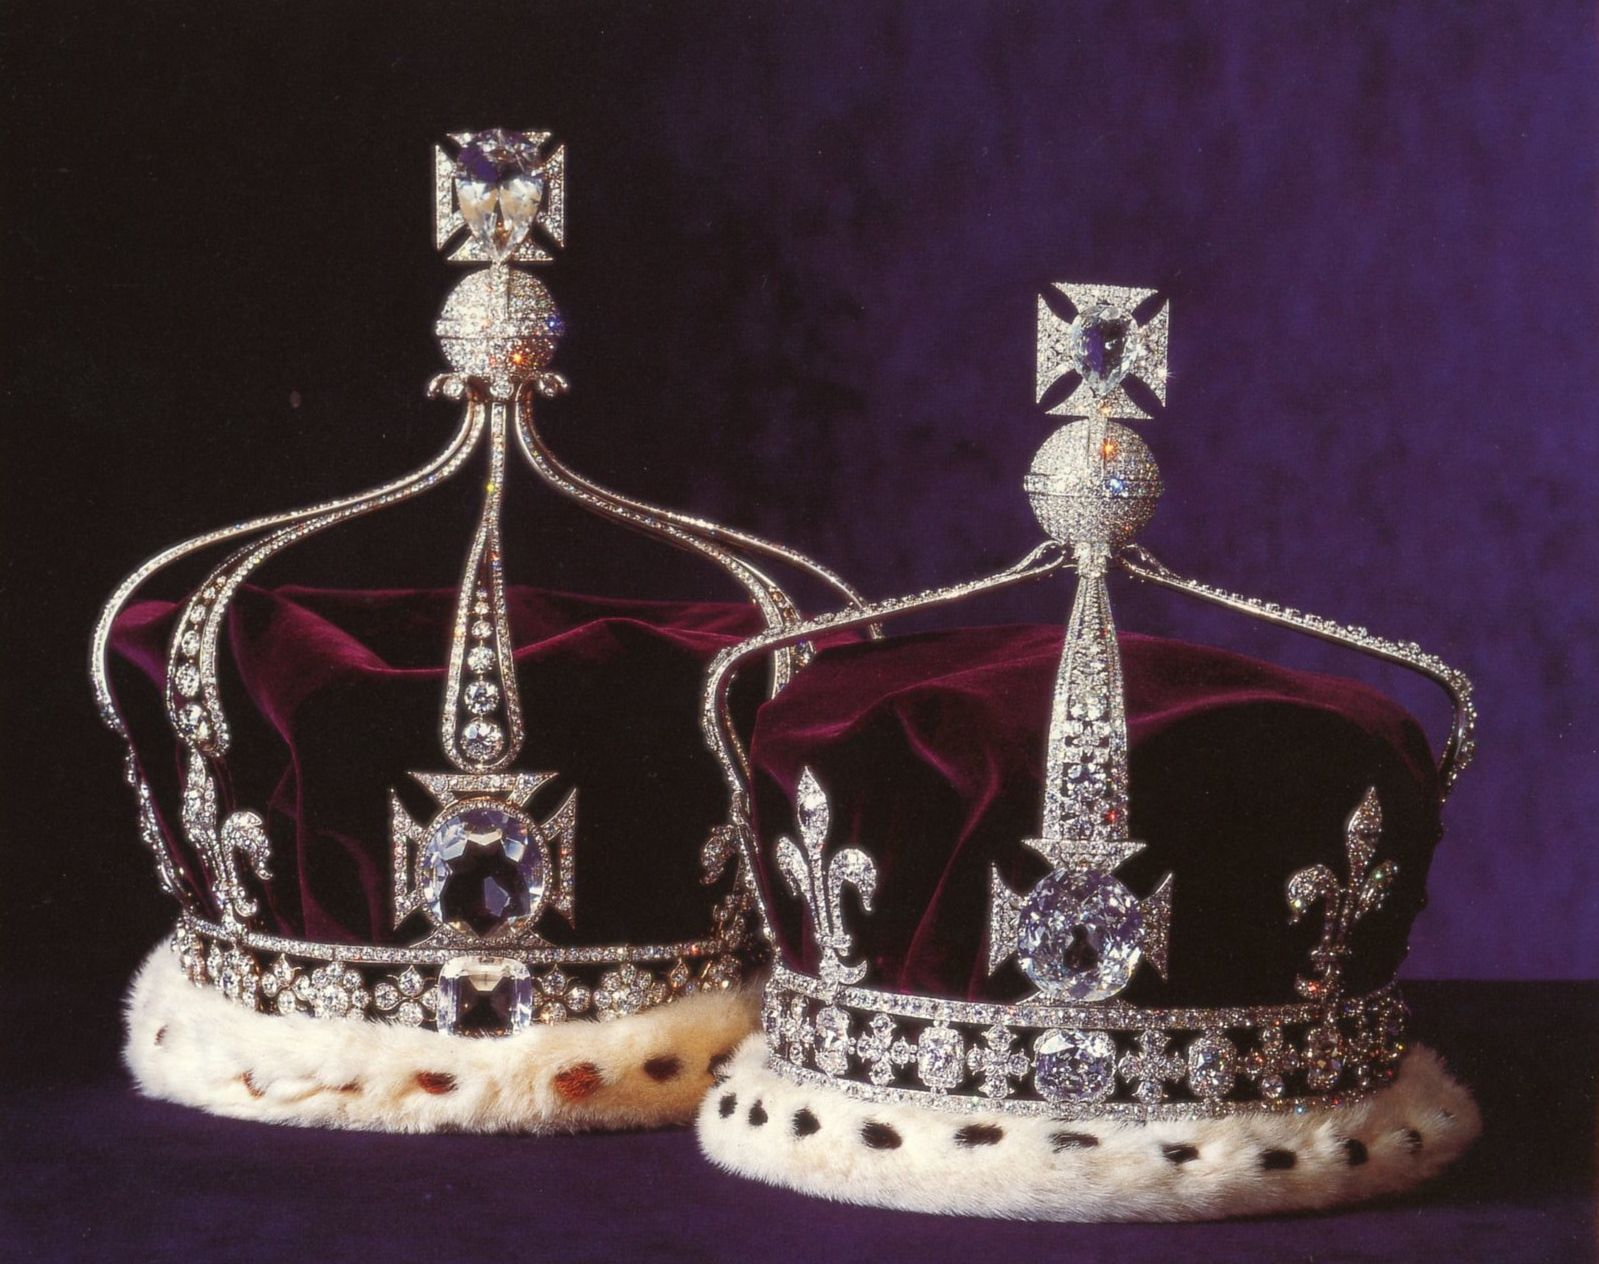 Queen Mary's Crown (in the background), designed for her